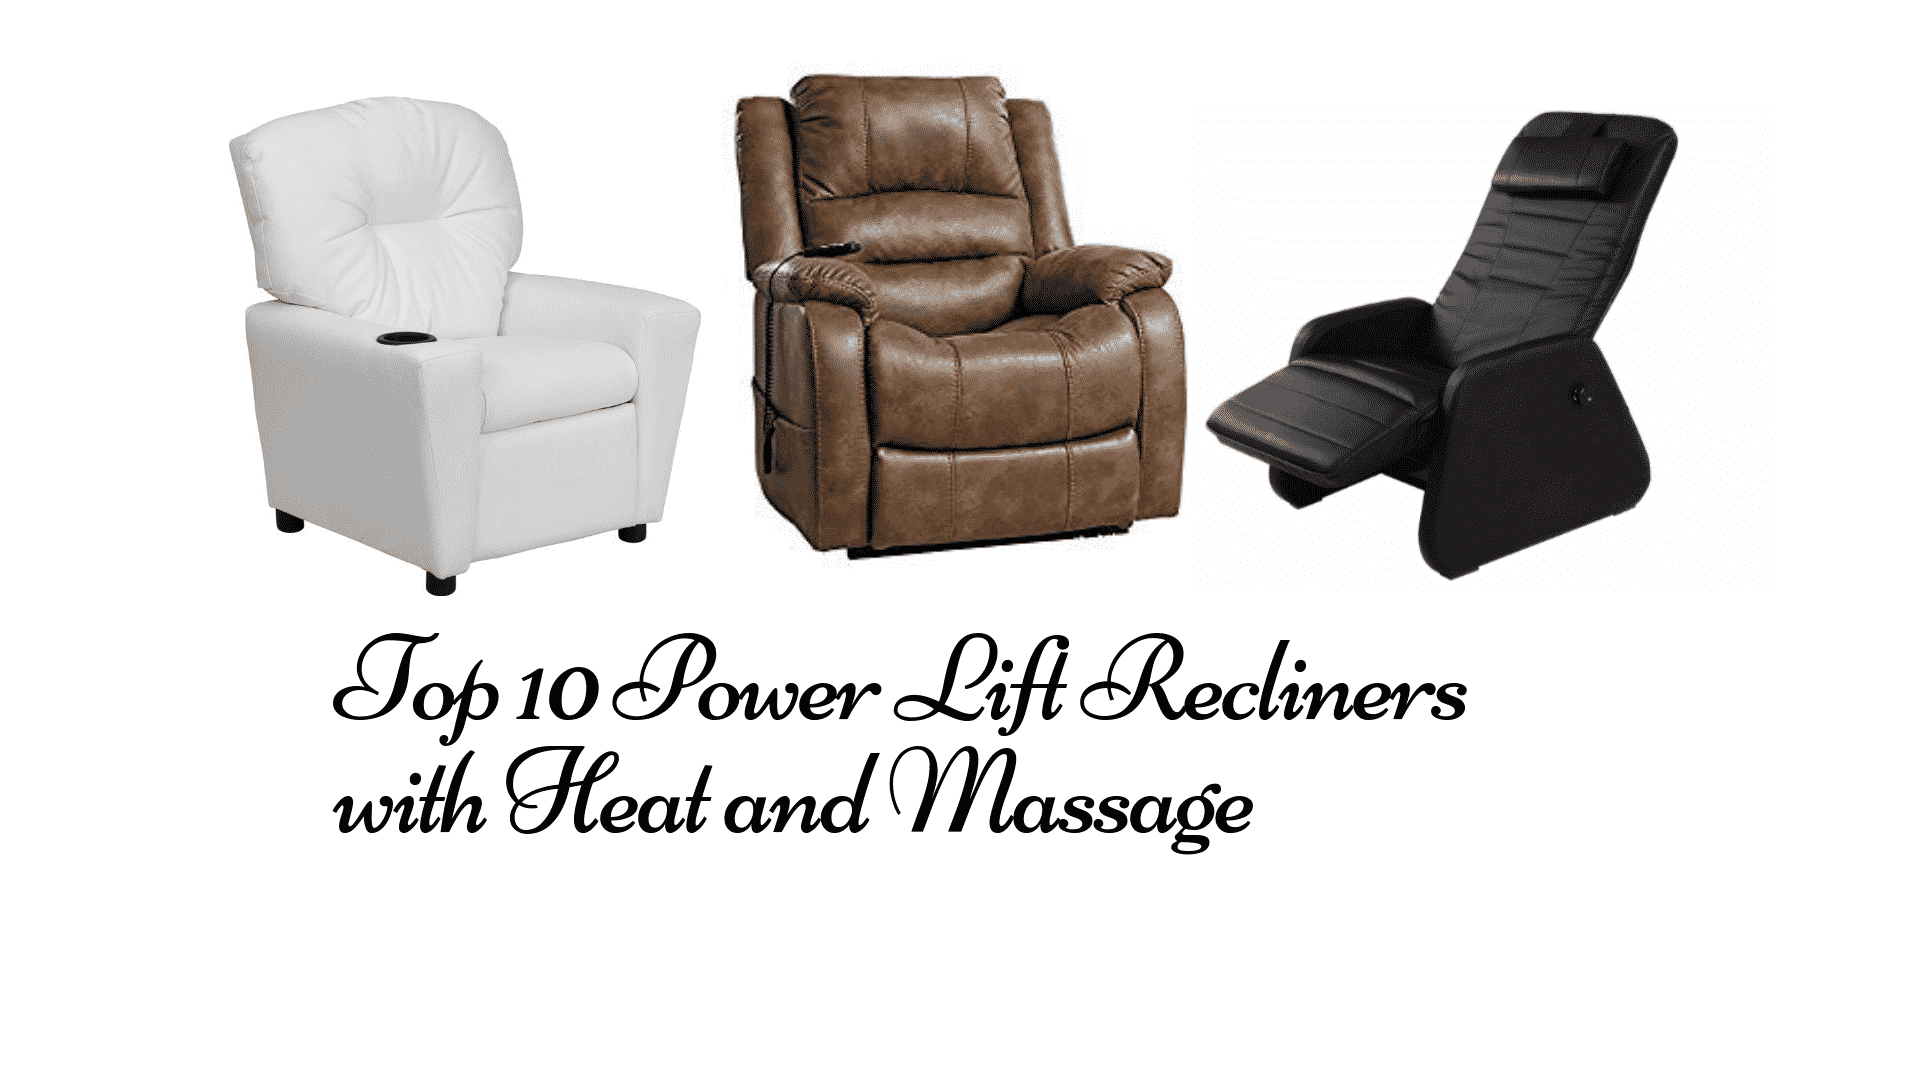 Amazing Top 10 Power Lift Recliners With Heat And Massage 2019 Pabps2019 Chair Design Images Pabps2019Com